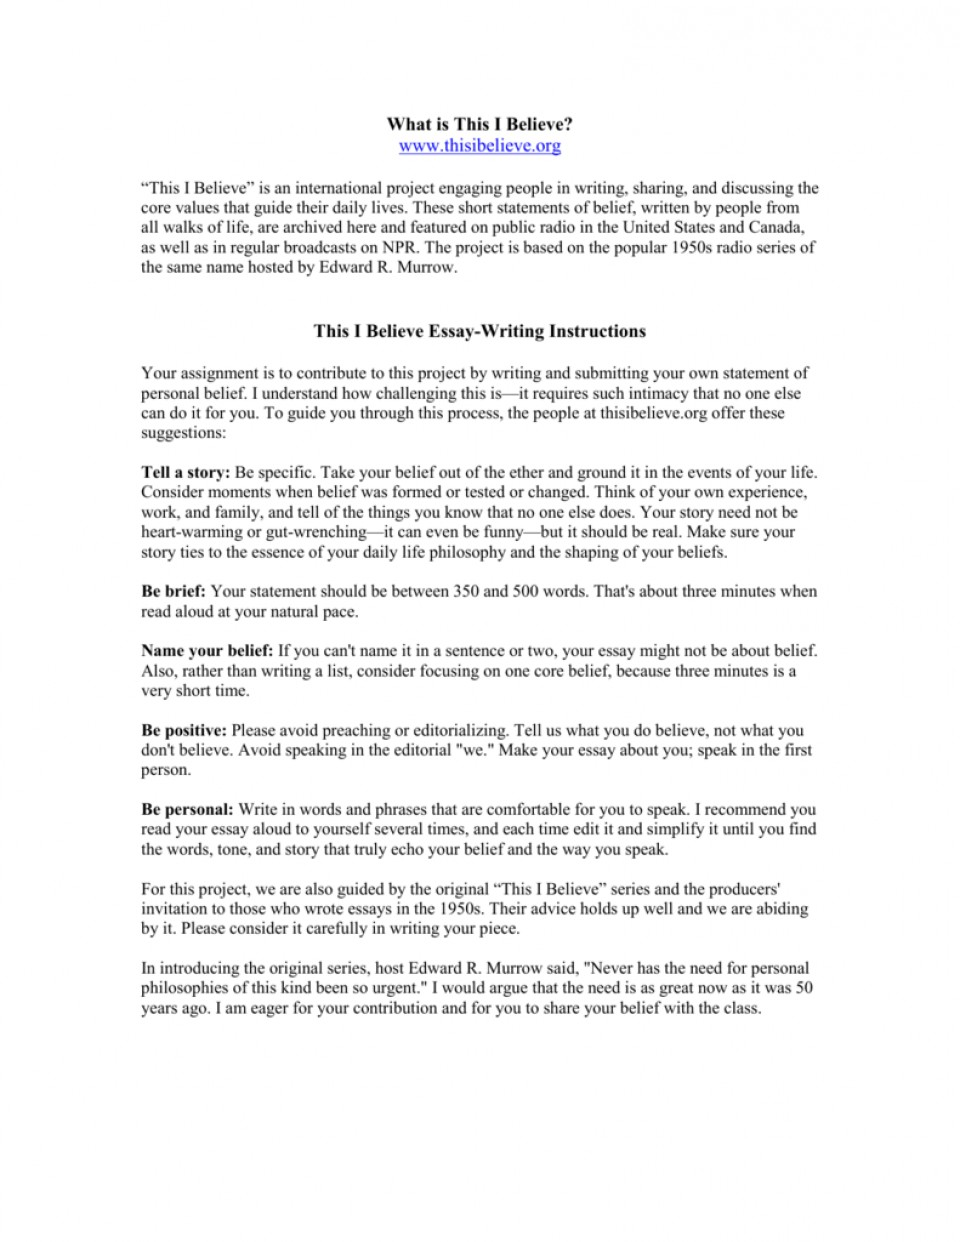 009 Essay Example How To Write This I Believe 008807226 1 Fantastic A What On Things 960